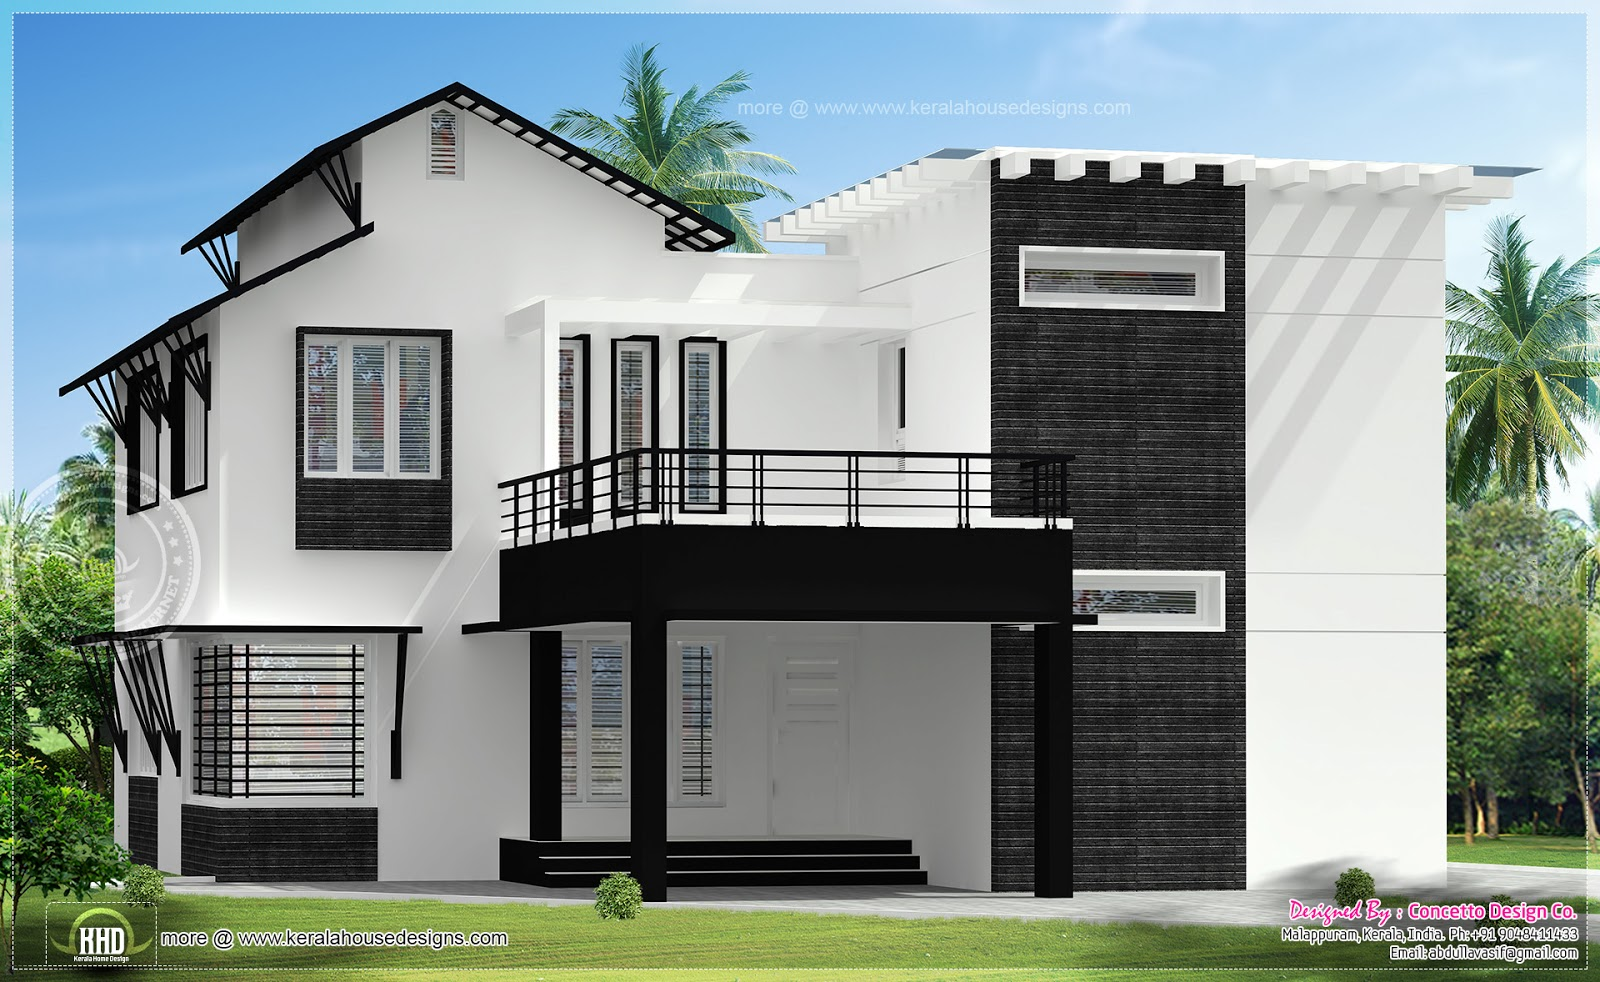 5 different house exteriors by concetto design kerala for Architect home plans